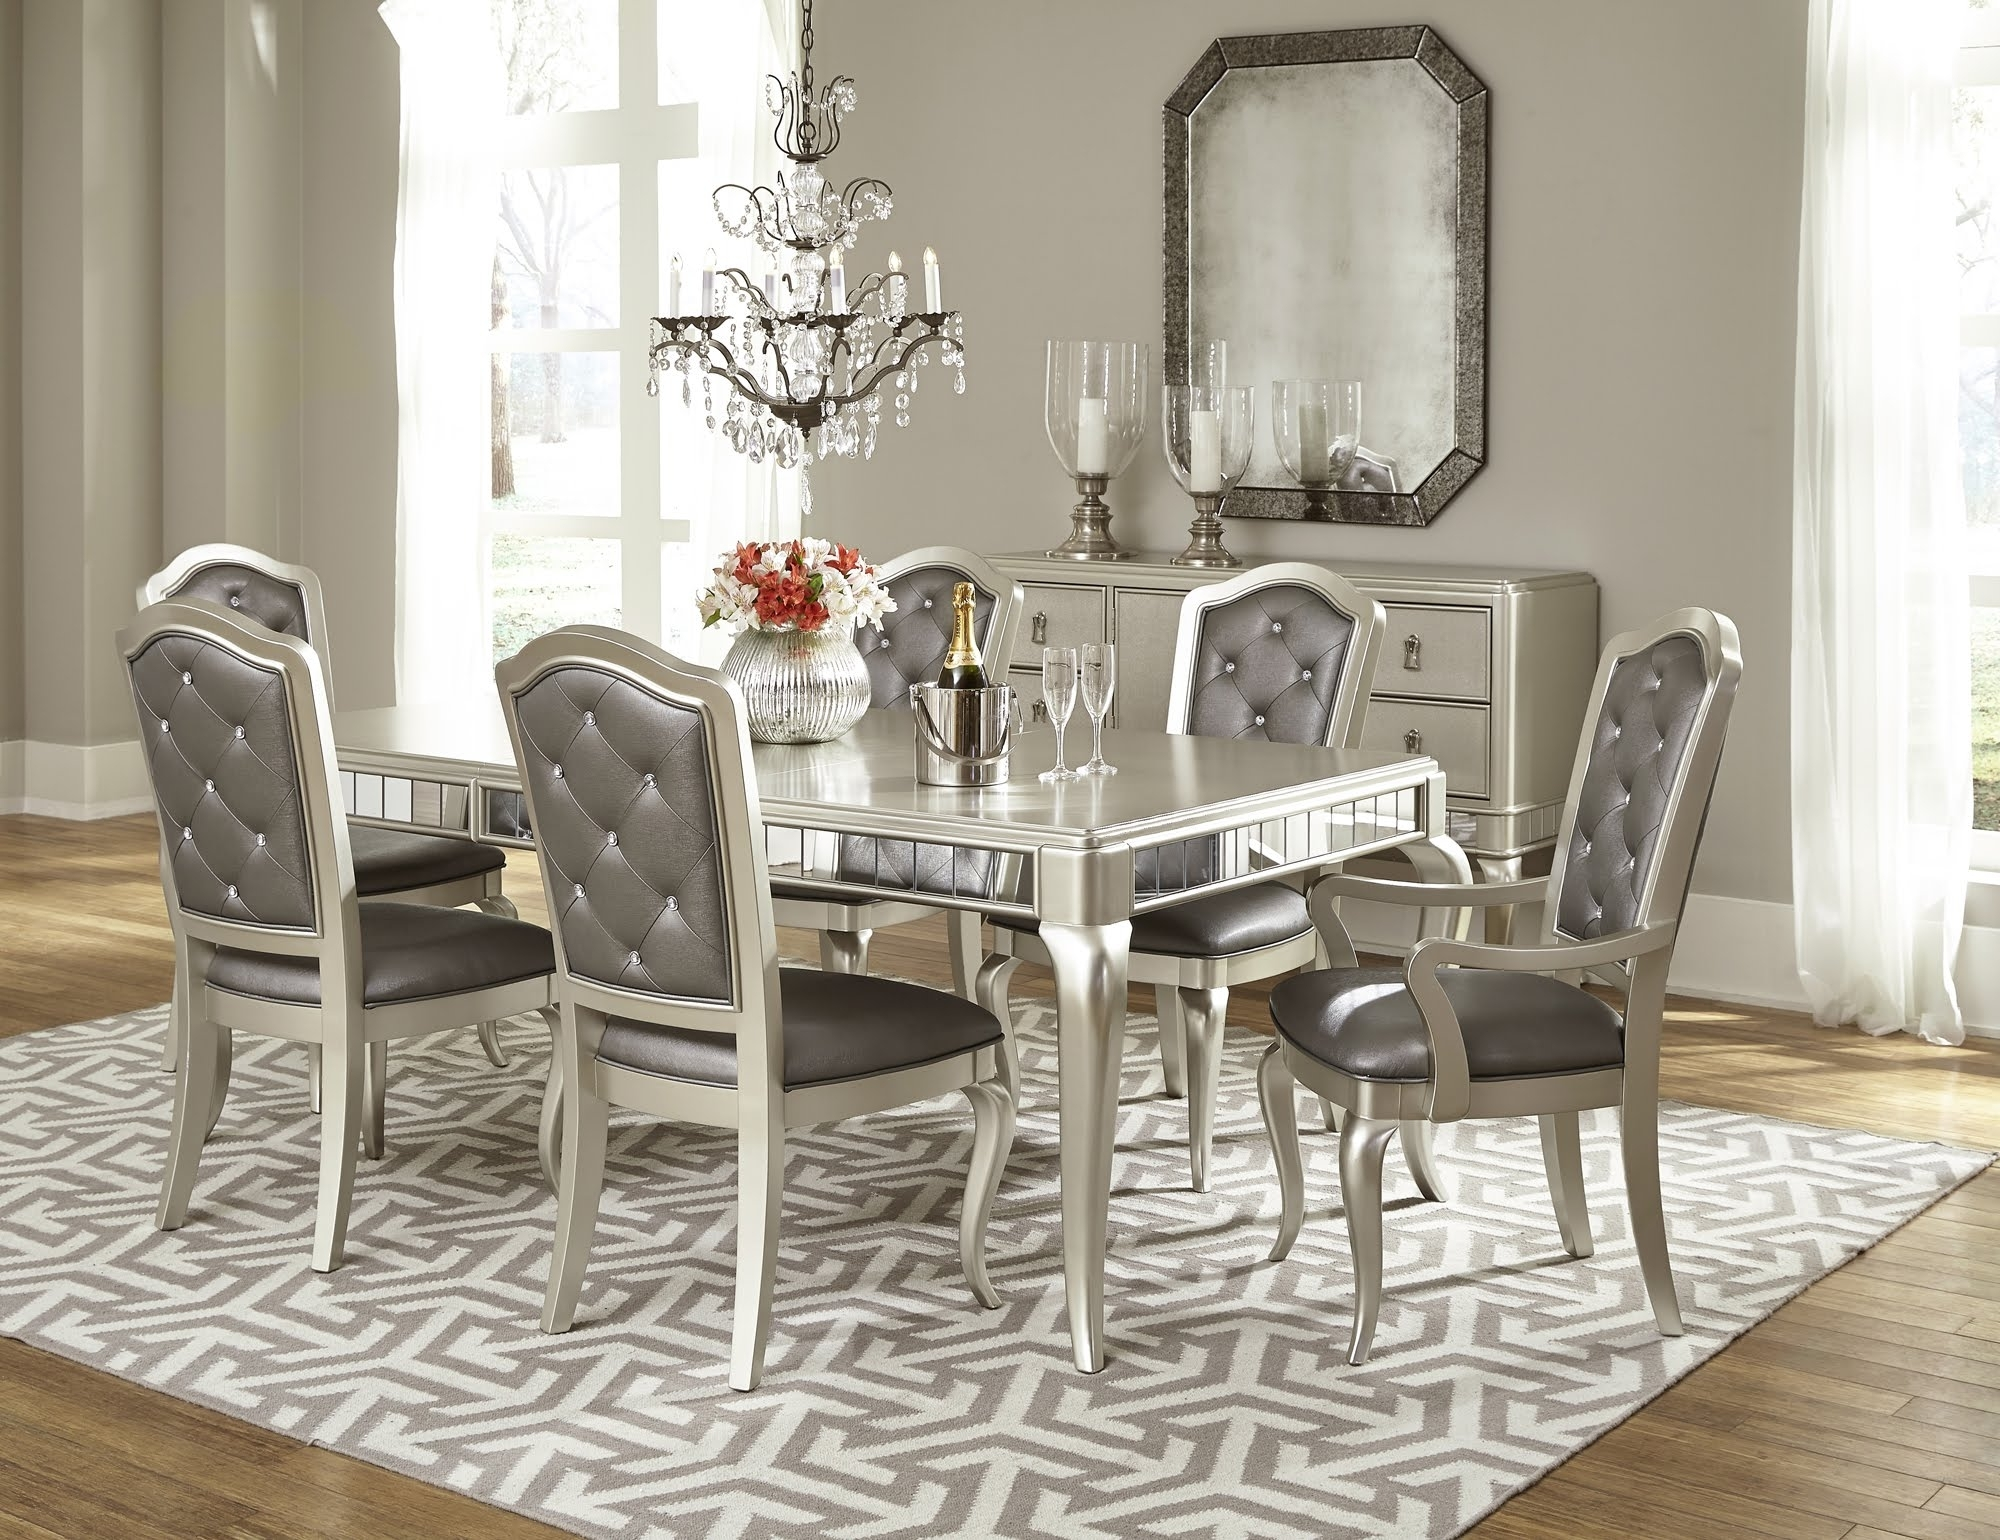 Diva Dining Room Set In Platinum Blingsamuel Lawrence Regarding Widely Used Sofa Chairs With Dining Table (View 3 of 15)